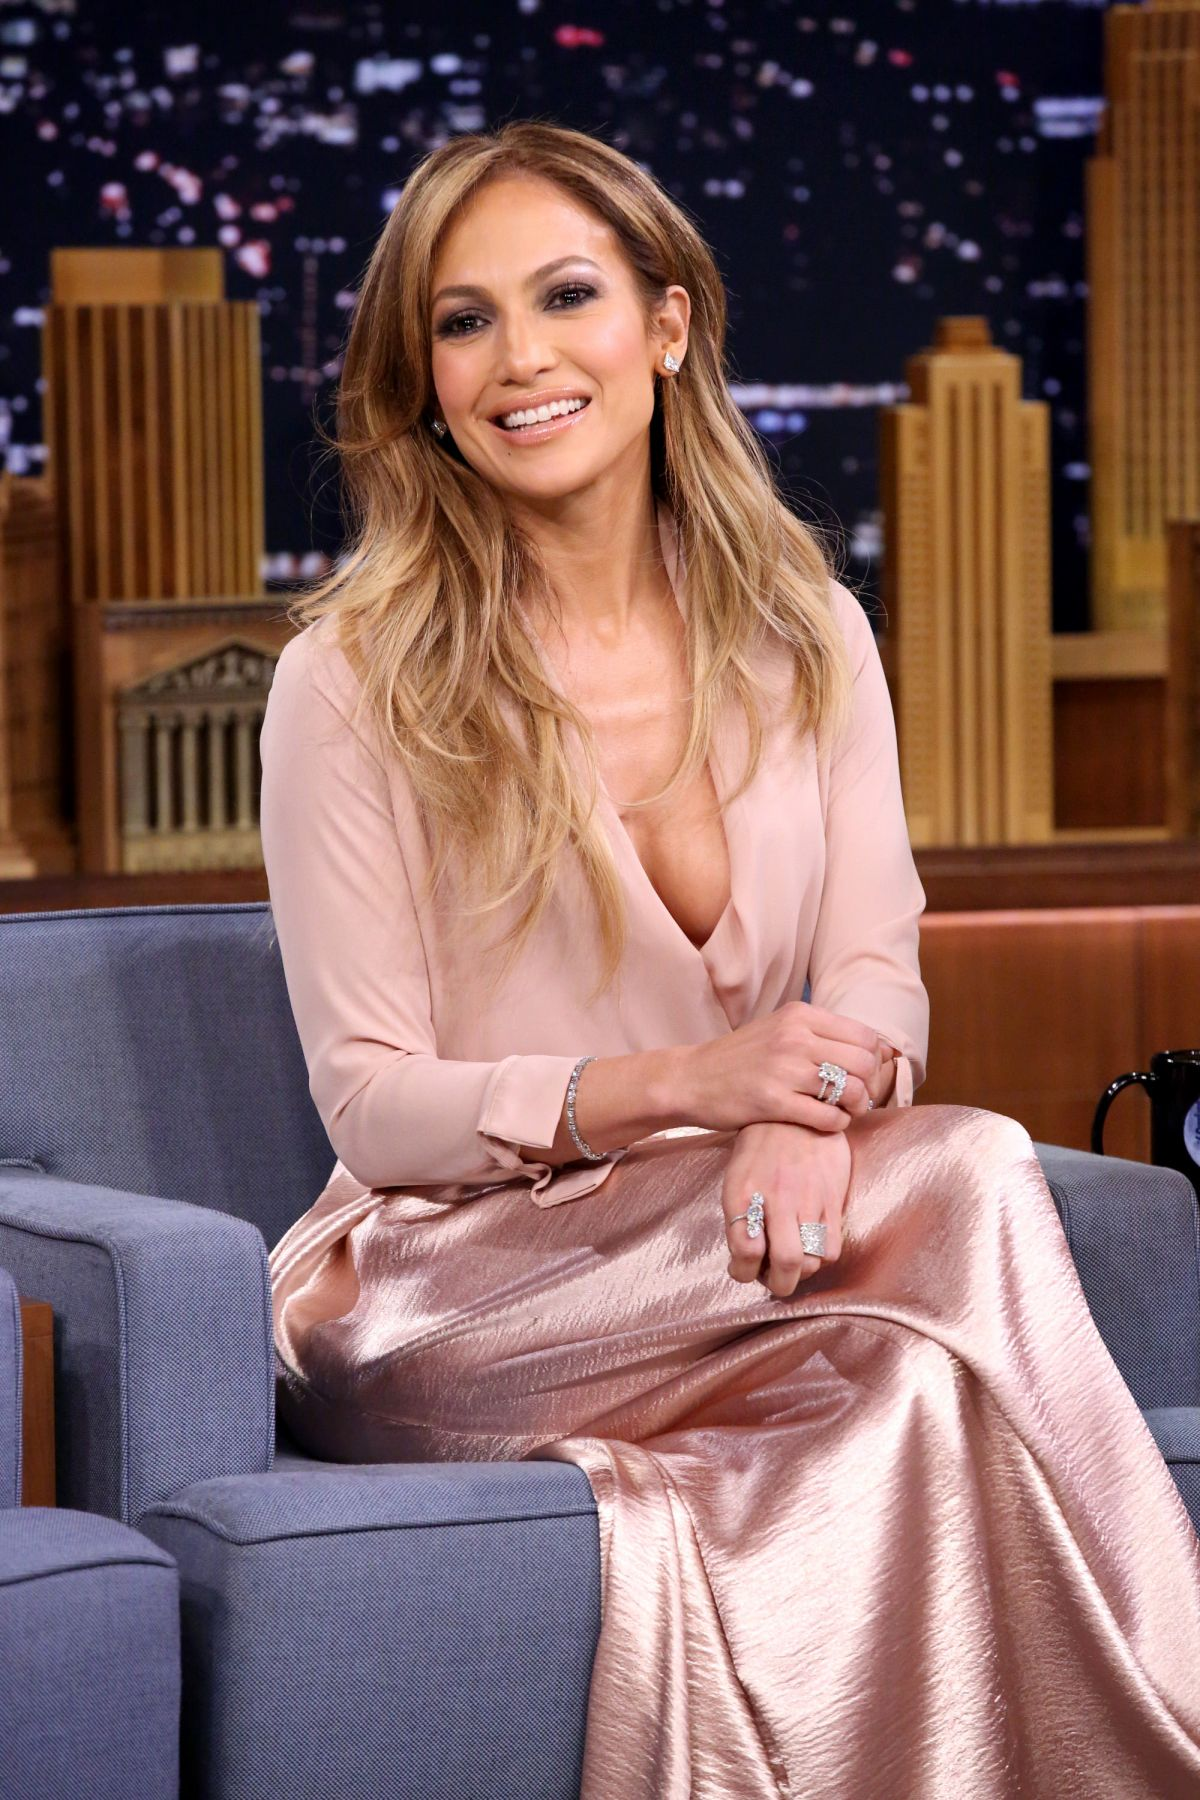 jennifer-lopez-guesting-at-the-tonight-show-starring-jimmy-fallon-in-new-york-city_1